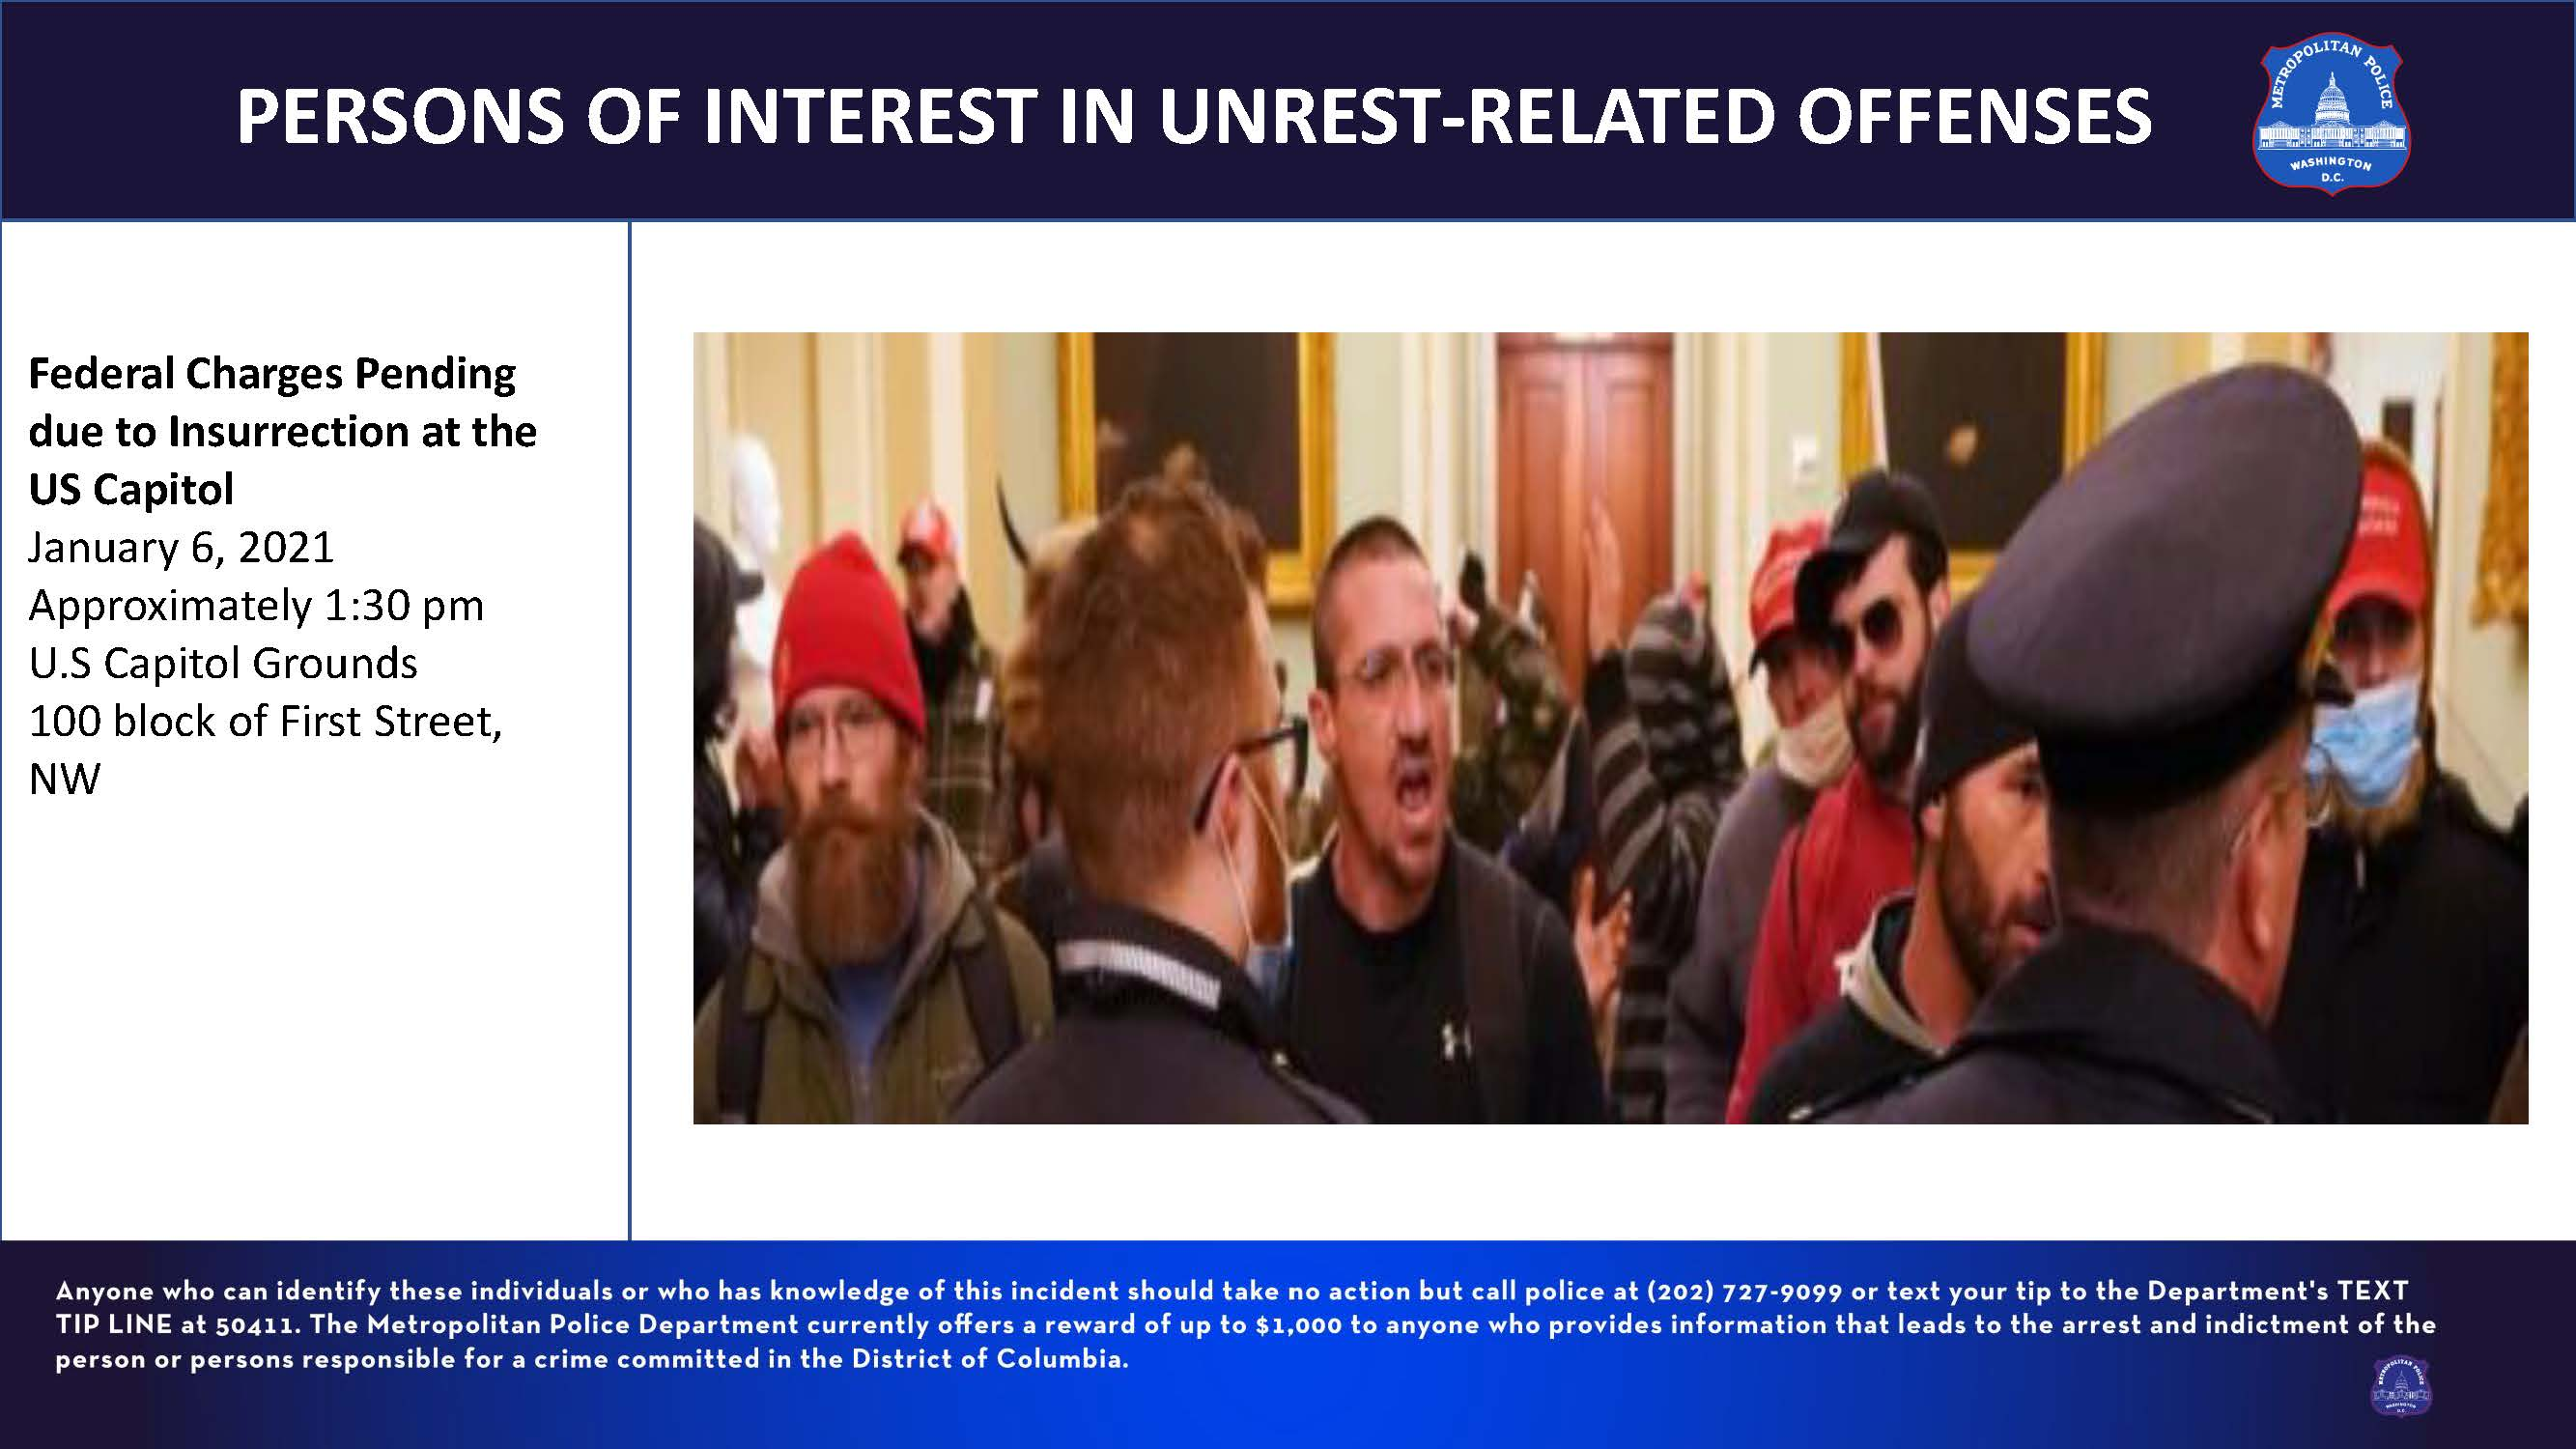 POIs in Unrest-Related Offenses on January 6, 2021